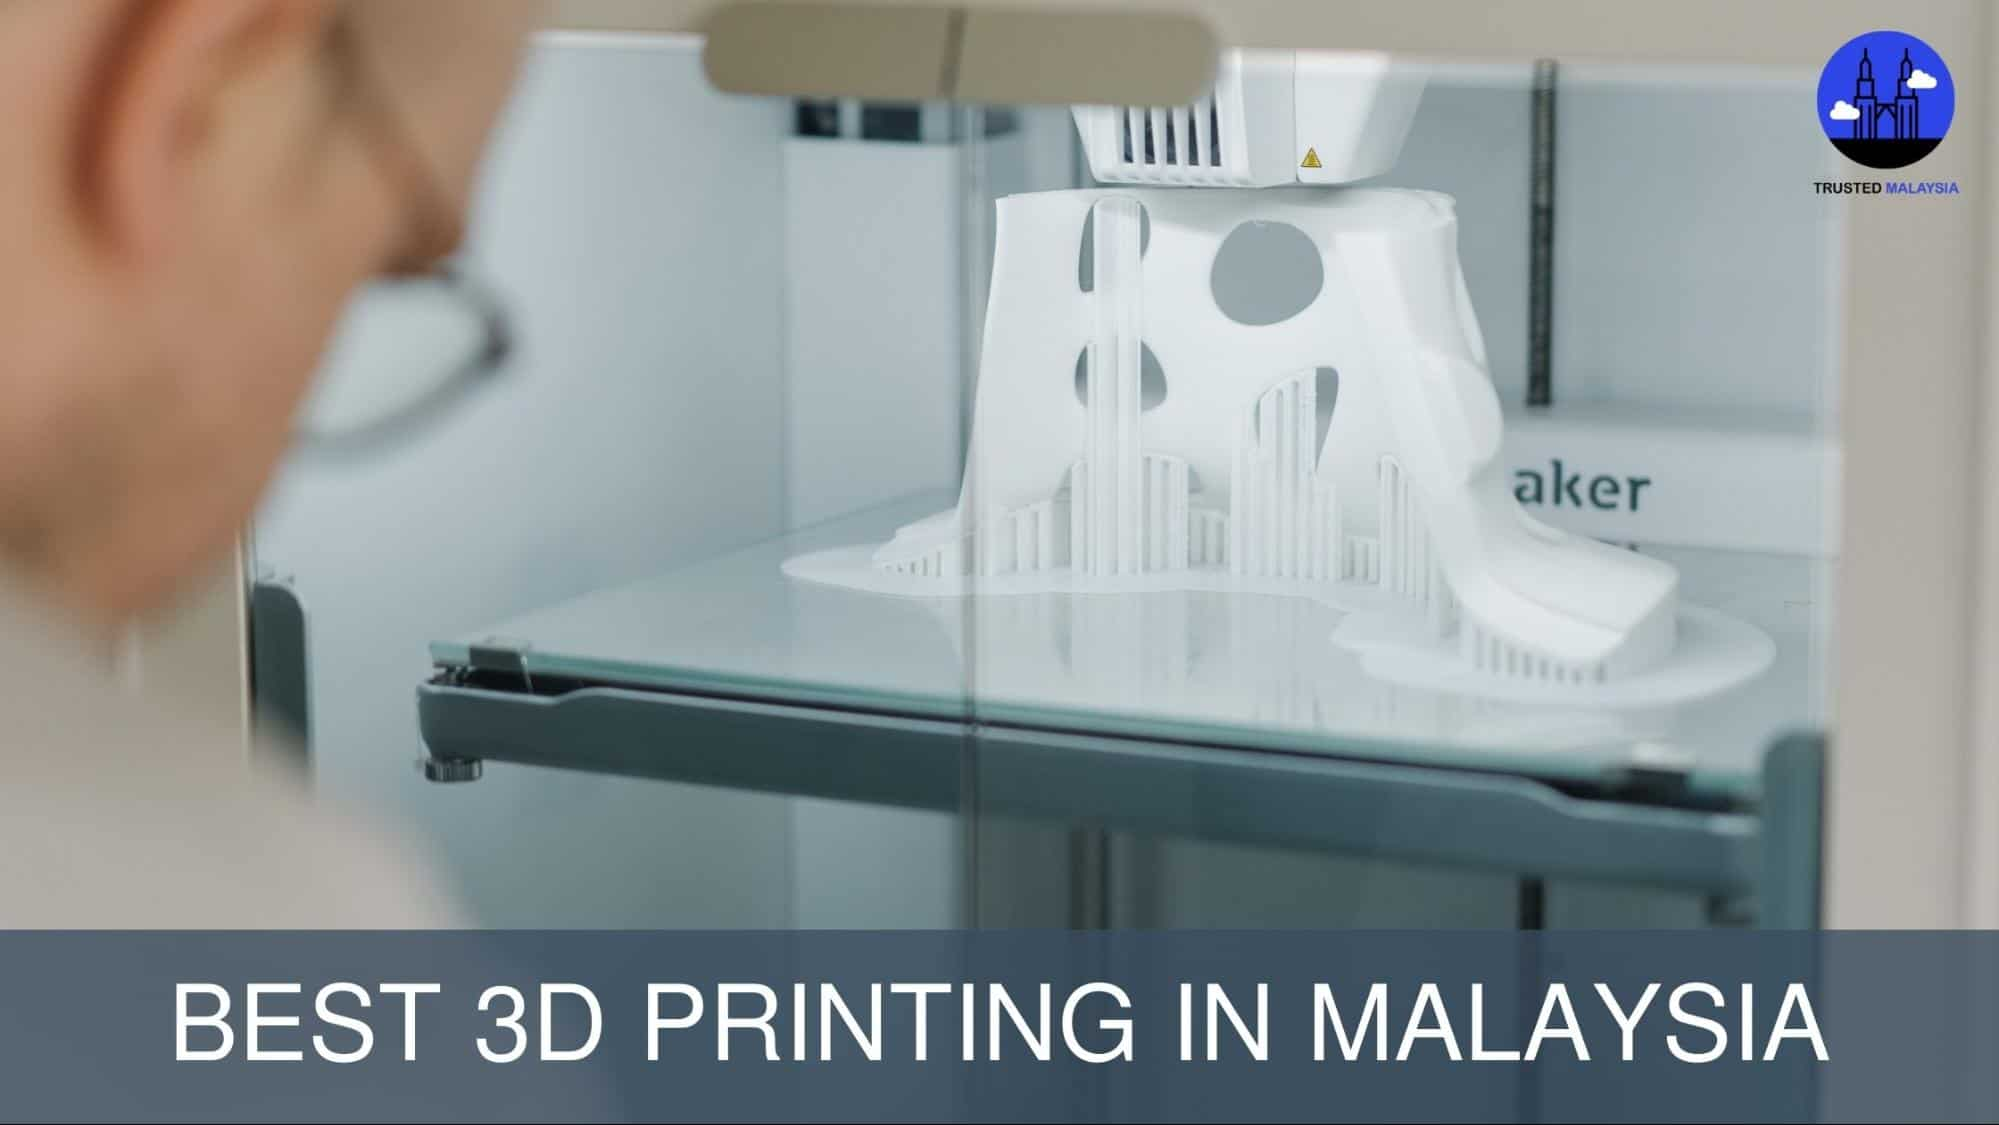 Best 3D Printing in Malaysia